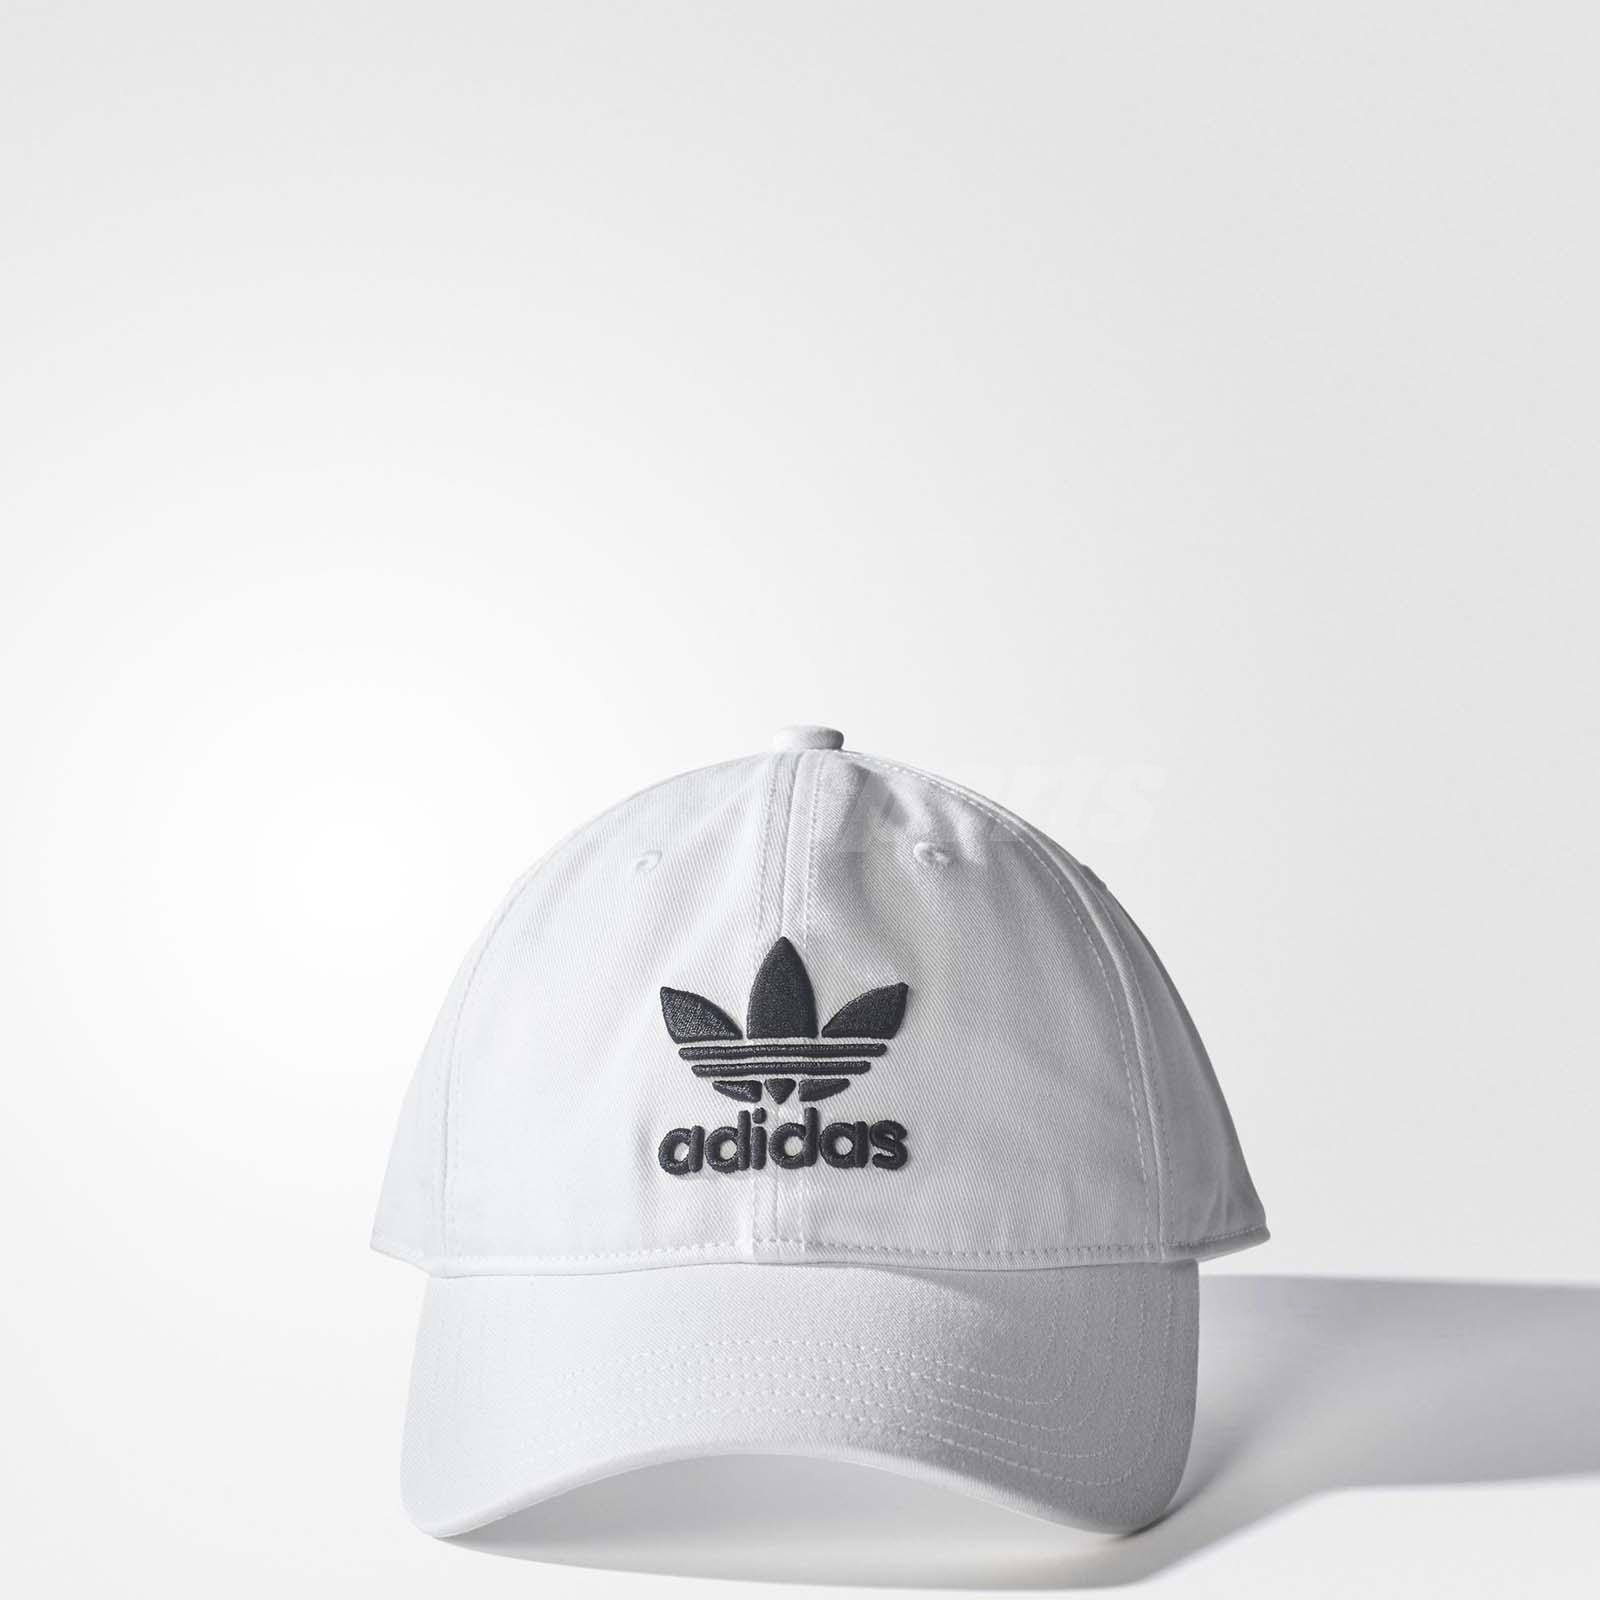 d90d89b2f61 adidas Originals Trefoil Classic White Black Cap Adjustable Strap Hat BR9720